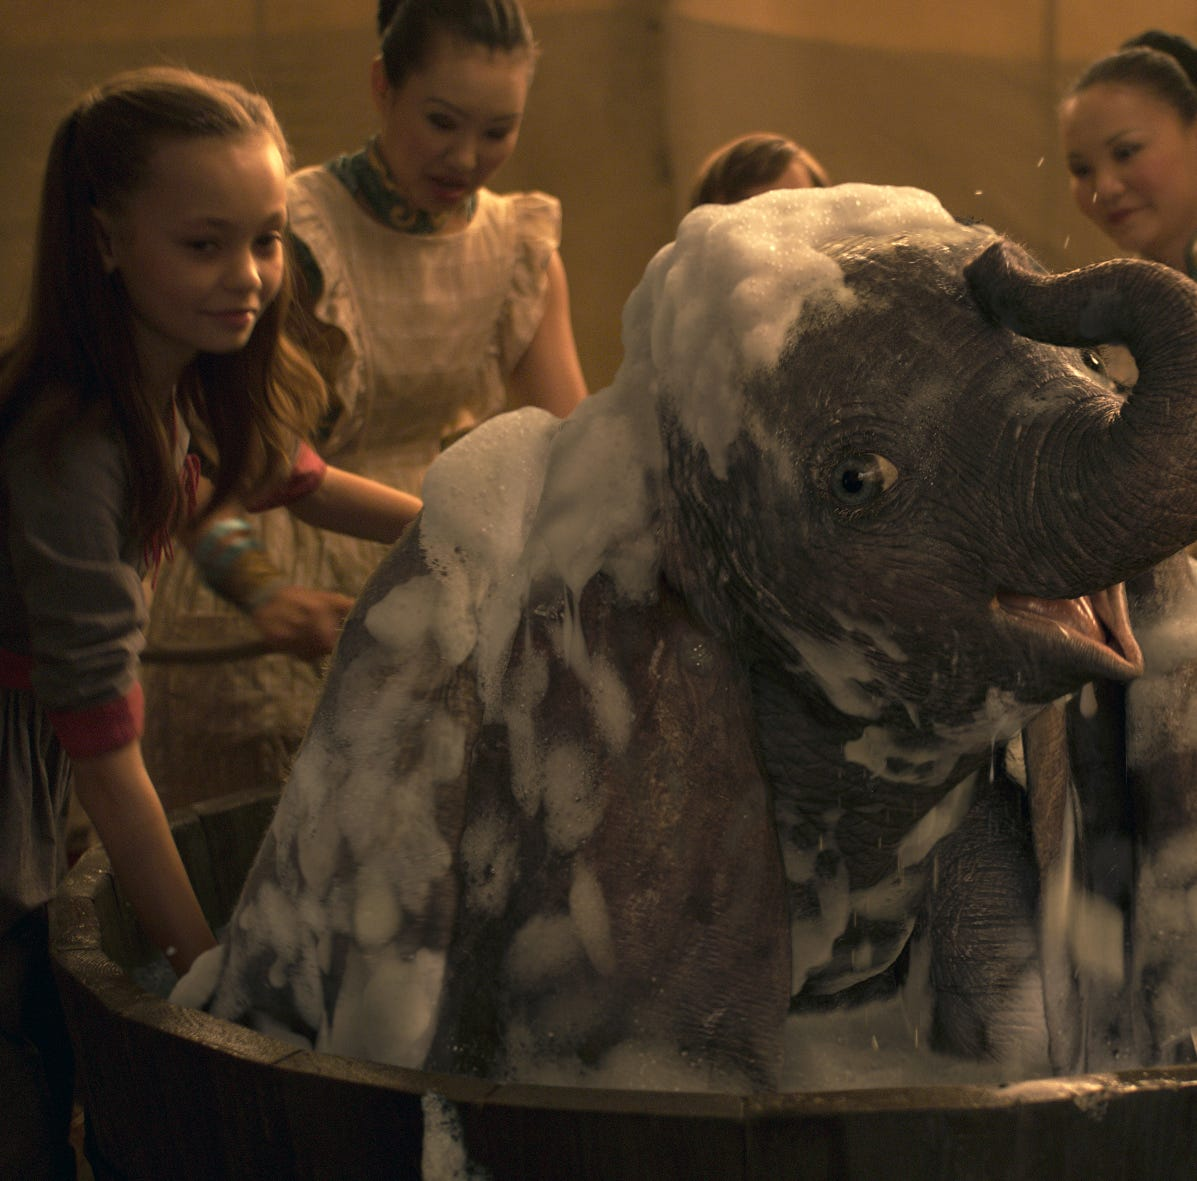 'Dumbo' doesn't quite soar this time around